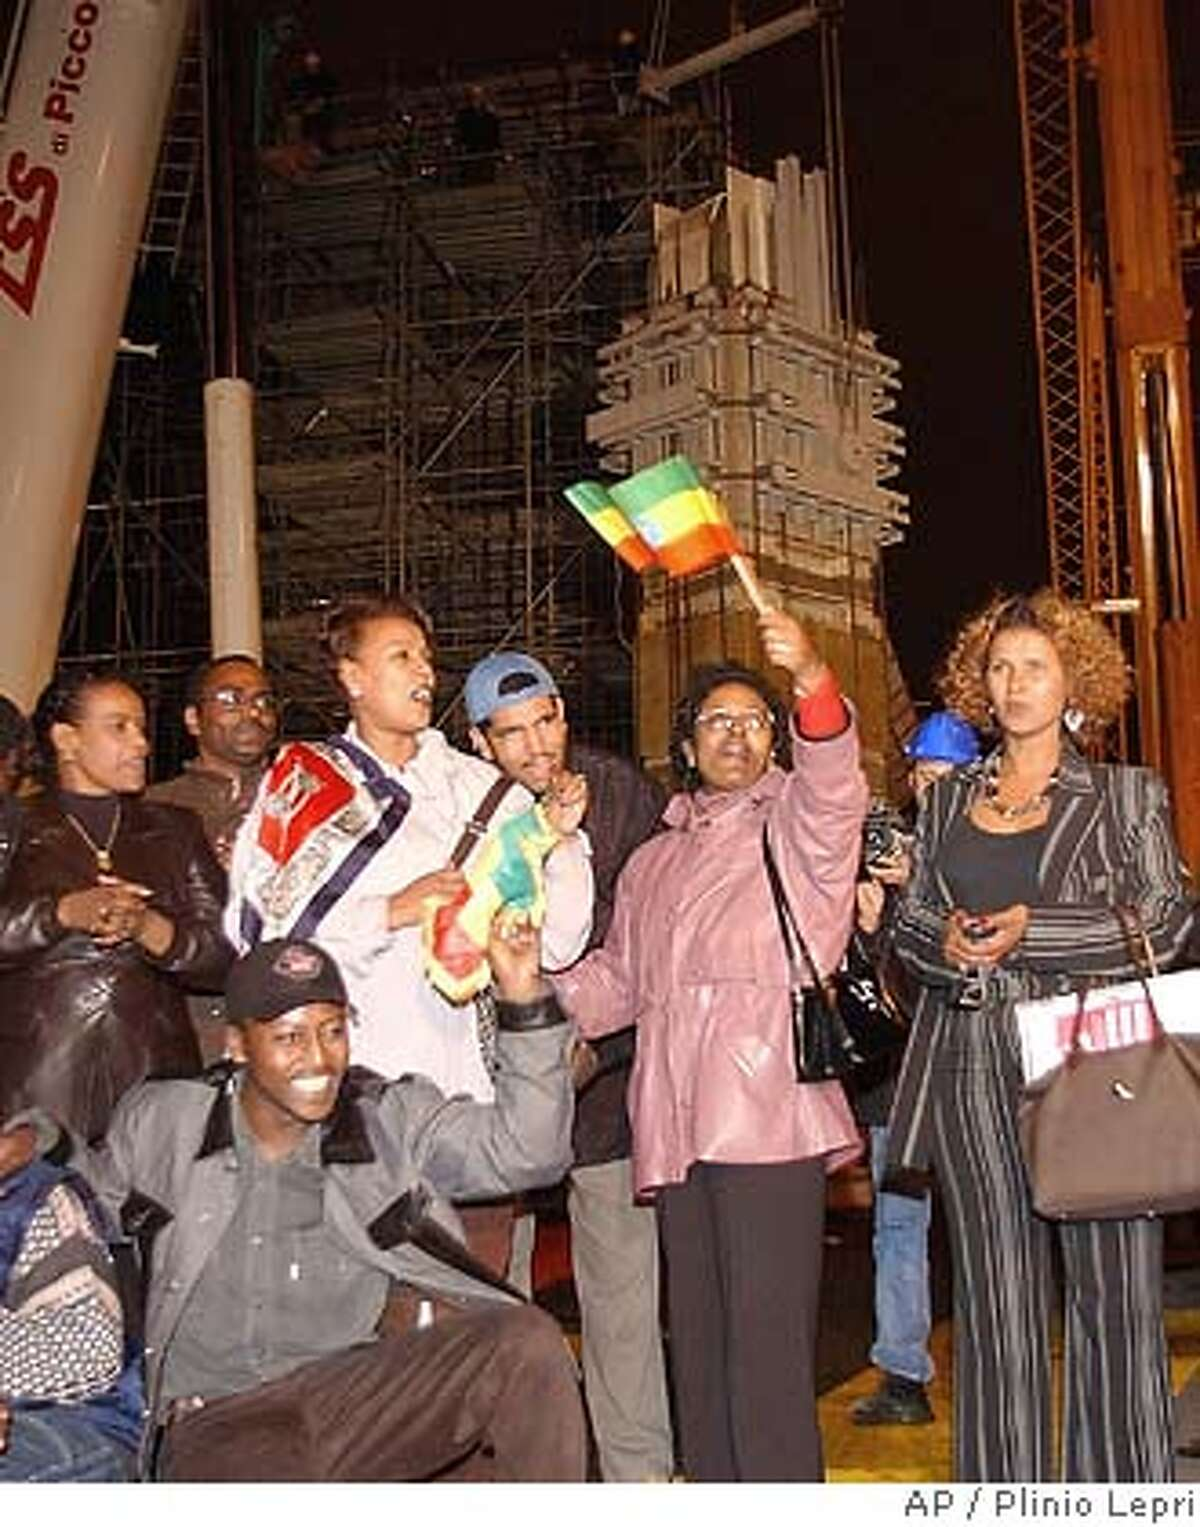 Members of the Ethiopian community in Rome, cheer after the removal of the top part - about seven meters (yards) long and weighing 40 tons in background - of the 1,700-year-old Axum Obelisk, in central Rome, in the early evening Friday Nov. 7, 2003. Eventually the full 24-meter (82 foot)-structure is to return to Ethiopia, decades after the monument was taken by Fascist dictator Benito Mussolini's forces. The Italian government decided last year to start procedures to return the prized symbol after decades of Ethiopian officials demanding it back. (AP Photo/Plinio Lepri) Ethiopian Italians cheer in central Rome after the top of the Axum Obelisk is removed. The 7-meter-long piece of the 1,700-year-old treasure weights 40 tons. Photo caption italy09_PH11068076800APMembers of the Ethiopian community in Rome, cheer after the removal of the top part - about seven meters (yards) long and weighing 40 tons in background - of the 1,700-year-old Axum Obelisk, in central Rome, in the early evening Friday Nov. 7, 2003. Eventually the full 24-meter (82 foot)-structure is to return to Ethiopia, decades after the monument was taken by Fascist dictator Benito Mussolini's forces. The Italian government decided last year to start procedures to return the prized symbol after decades of Ethiopian officials demanding it back. (AP Photo-Plinio Lepri) Ethiopian Italians cheer in central Rome after the top of the Axum Obelisk is removed. The 7-meter-long piece of the 1,700-year-old treasure weighs 40 tons. CAT